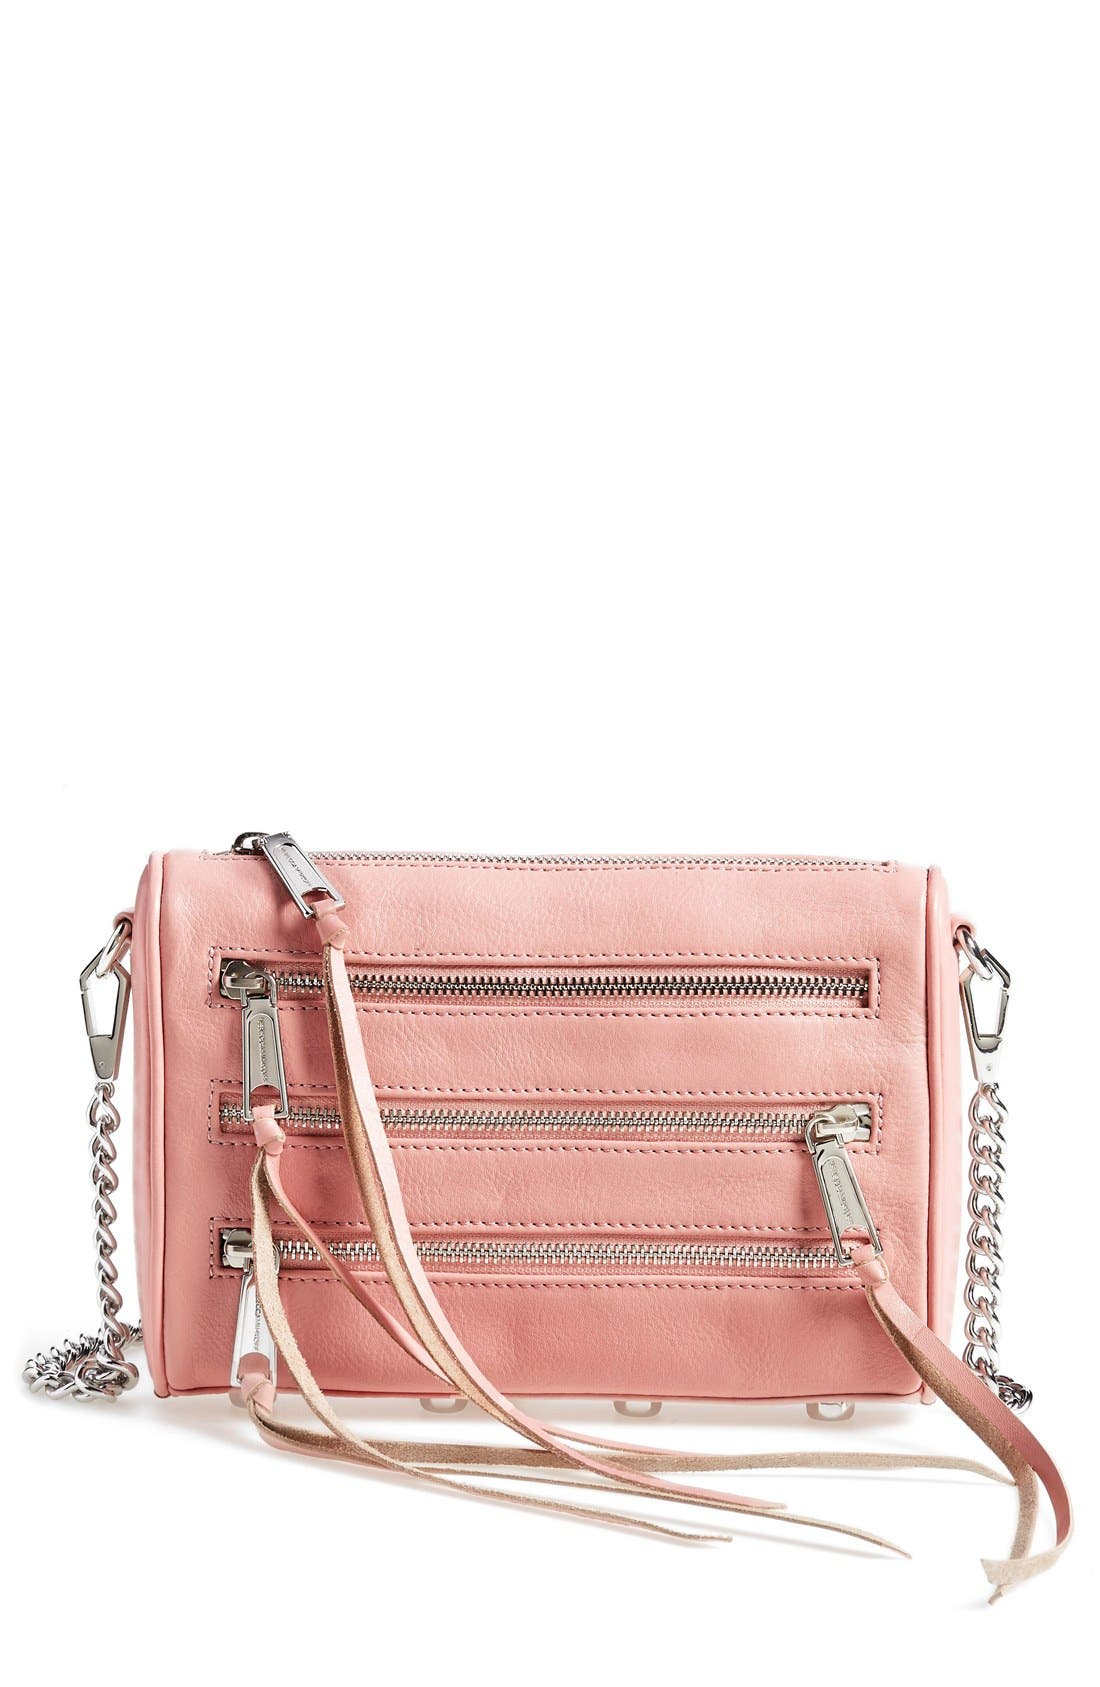 Main Image - Rebecca Minkoff 'Mini 5 Zip' Convertible Crossbody Bag